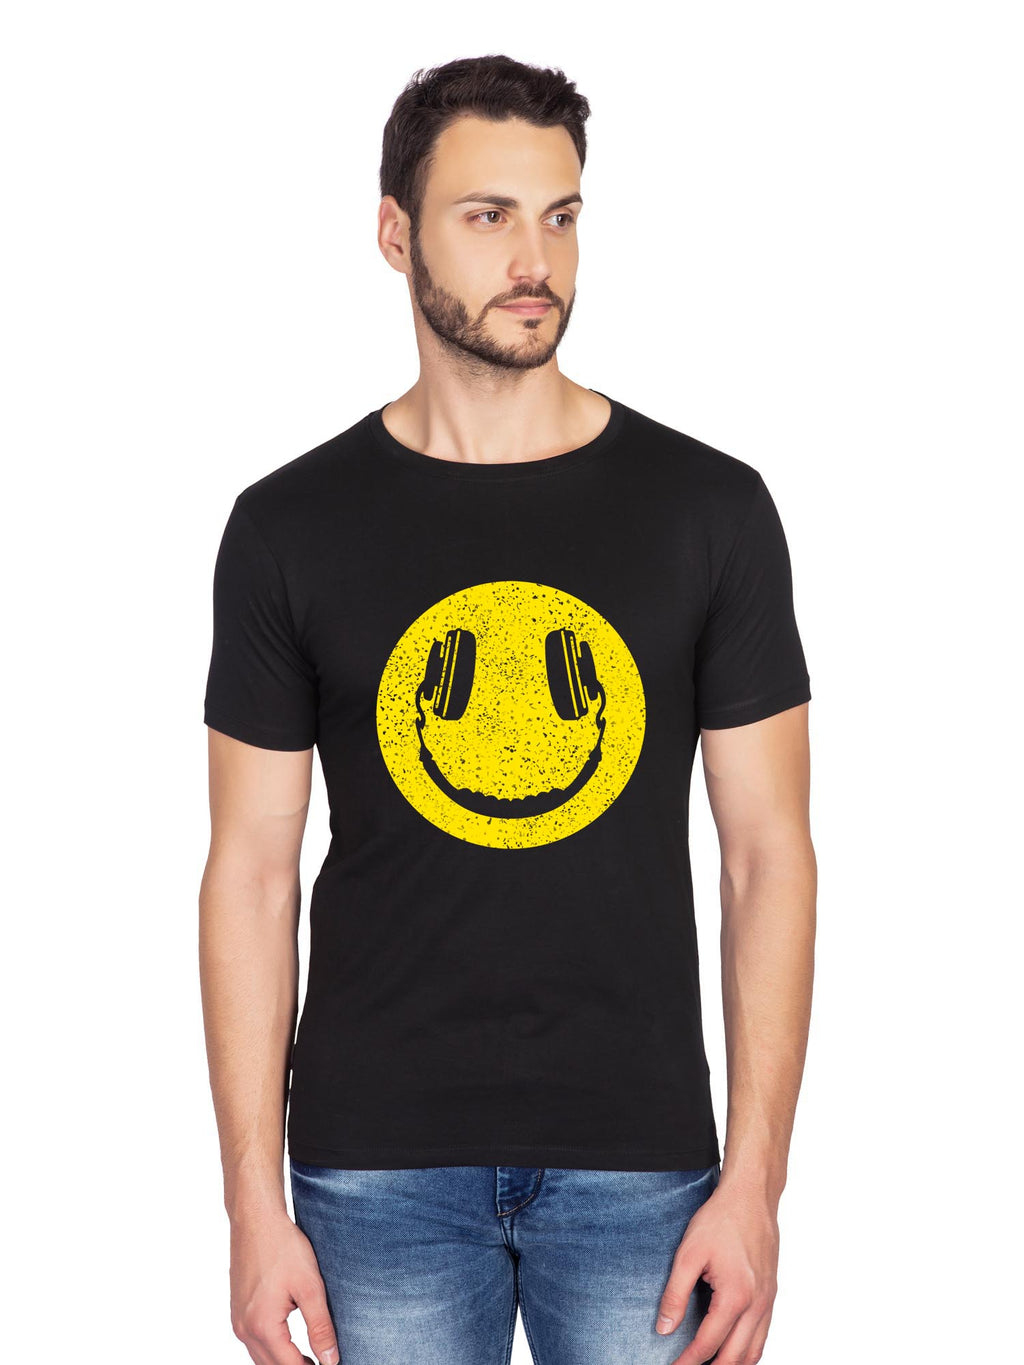 Happy Music Emoji Graphics Half Tshirt - bluehaat